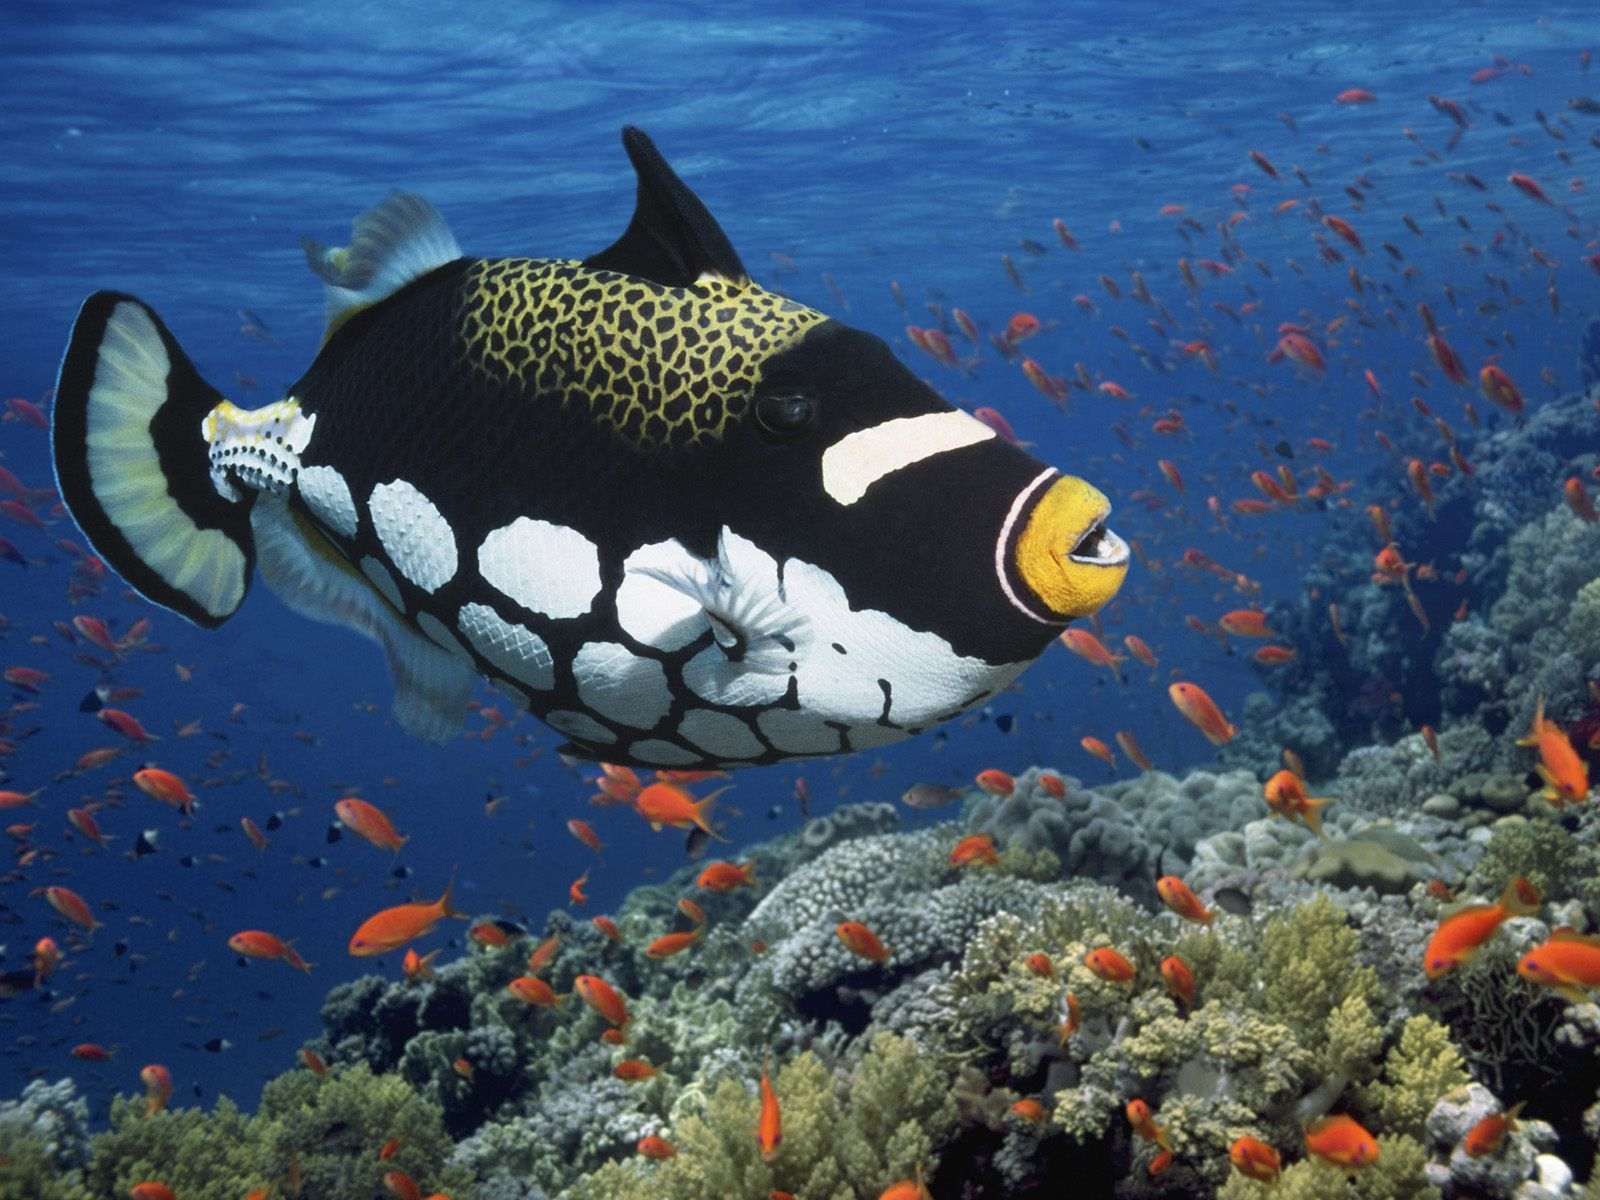 The Beauty Clown Triggerfish